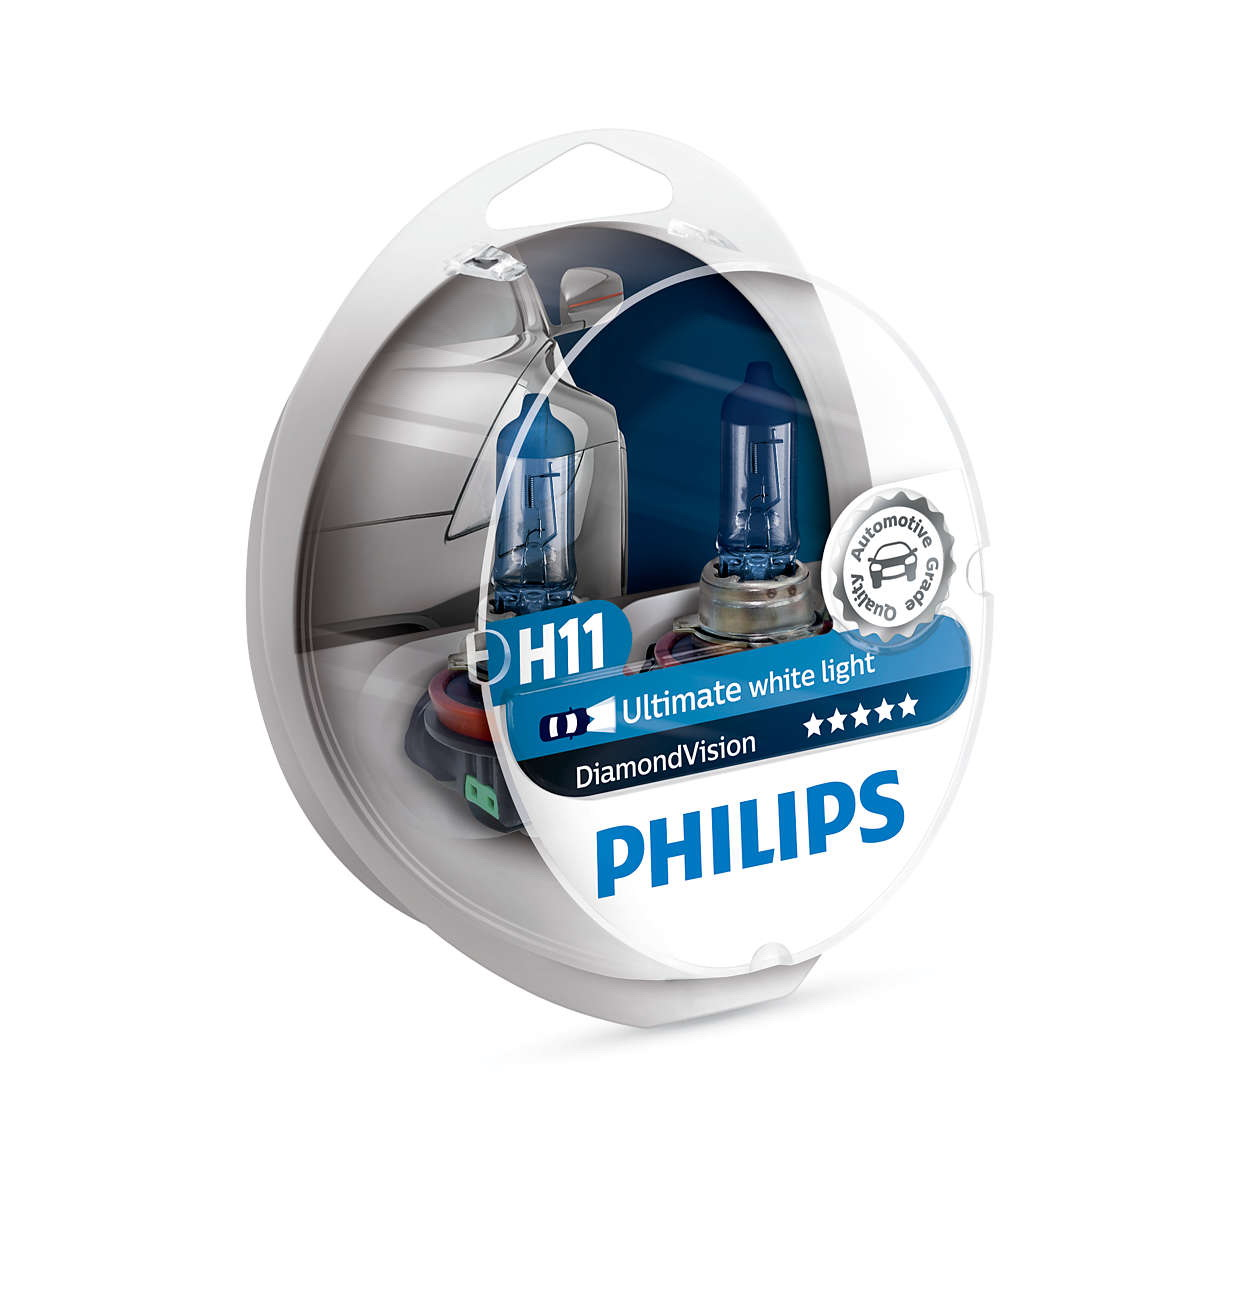 H11 PHILIPS 5000K DIAMOND VISION/XENON LOOK